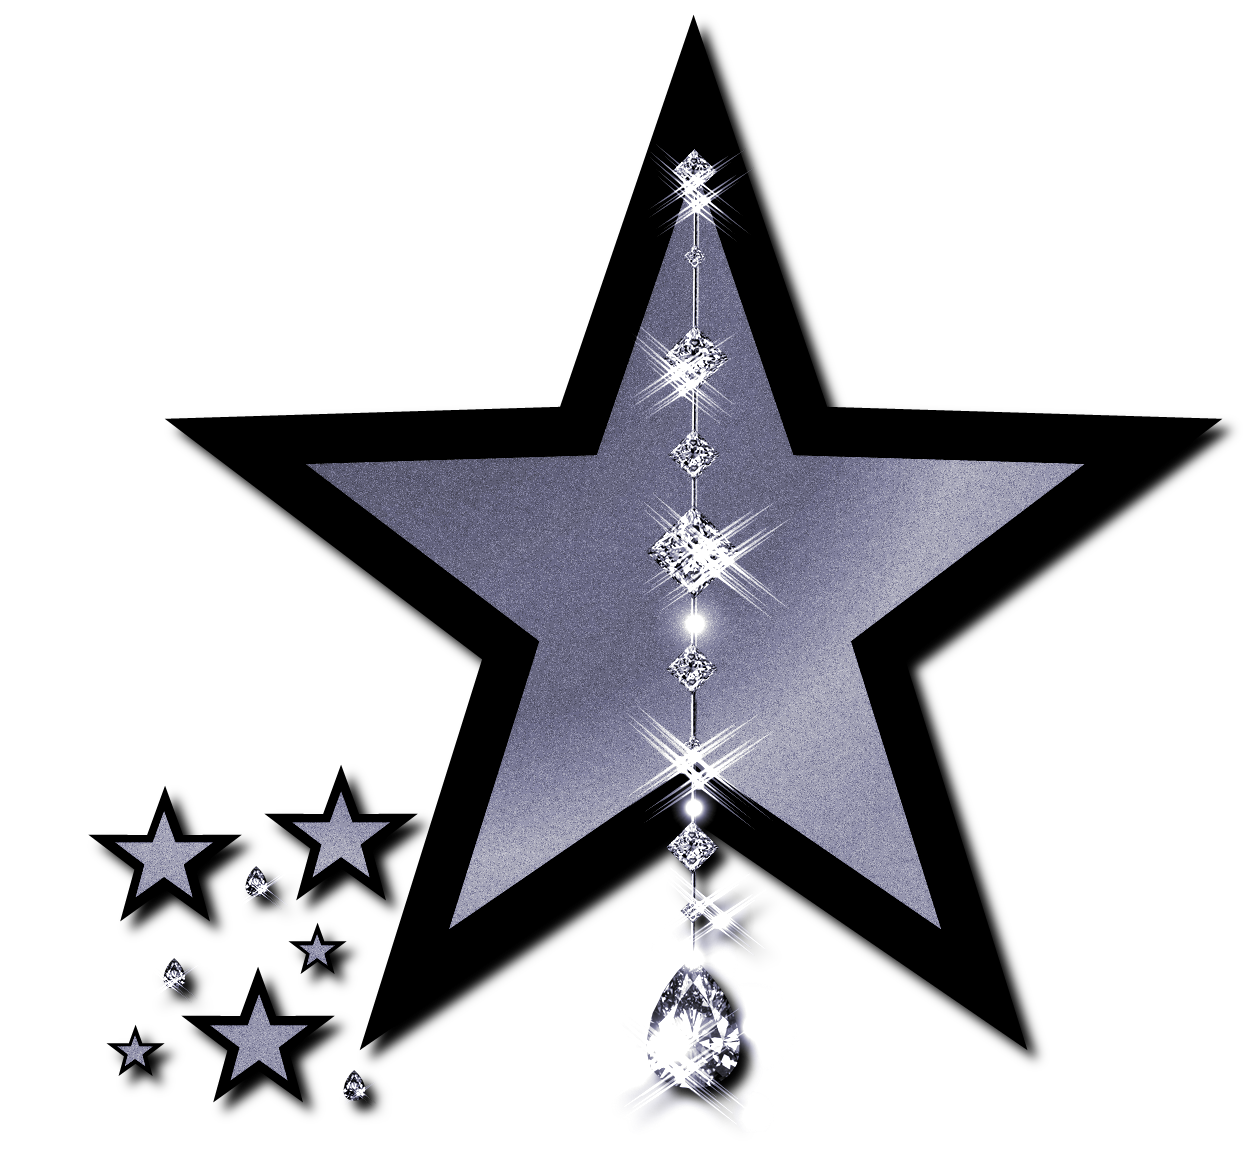 Silver And Black Star Clip Art By Jssanda On Deviantart